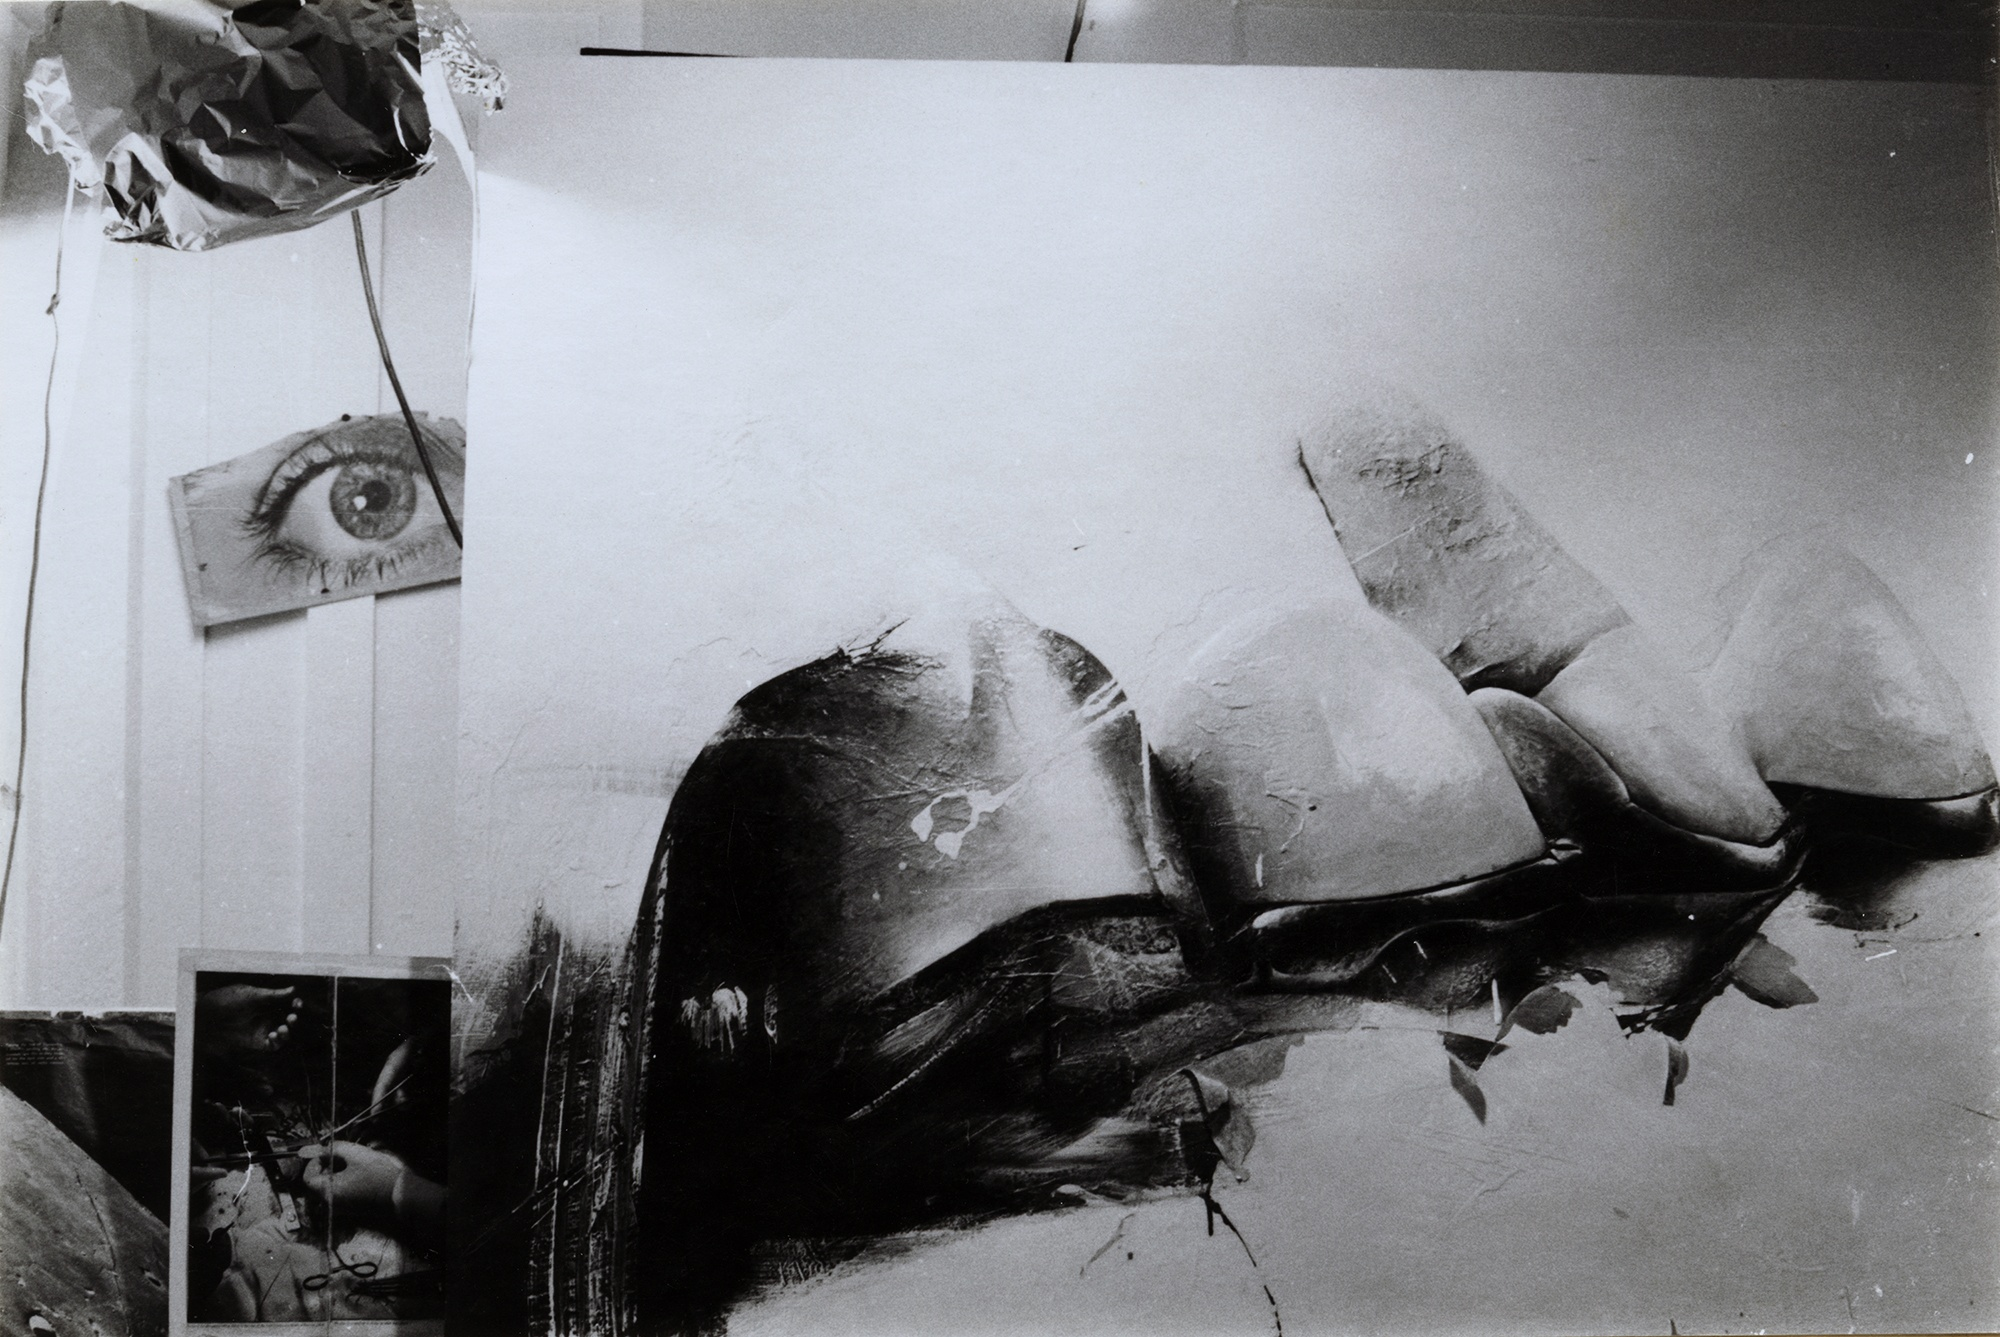 Catching Ideas in Process: Jay DeFeo's Photography